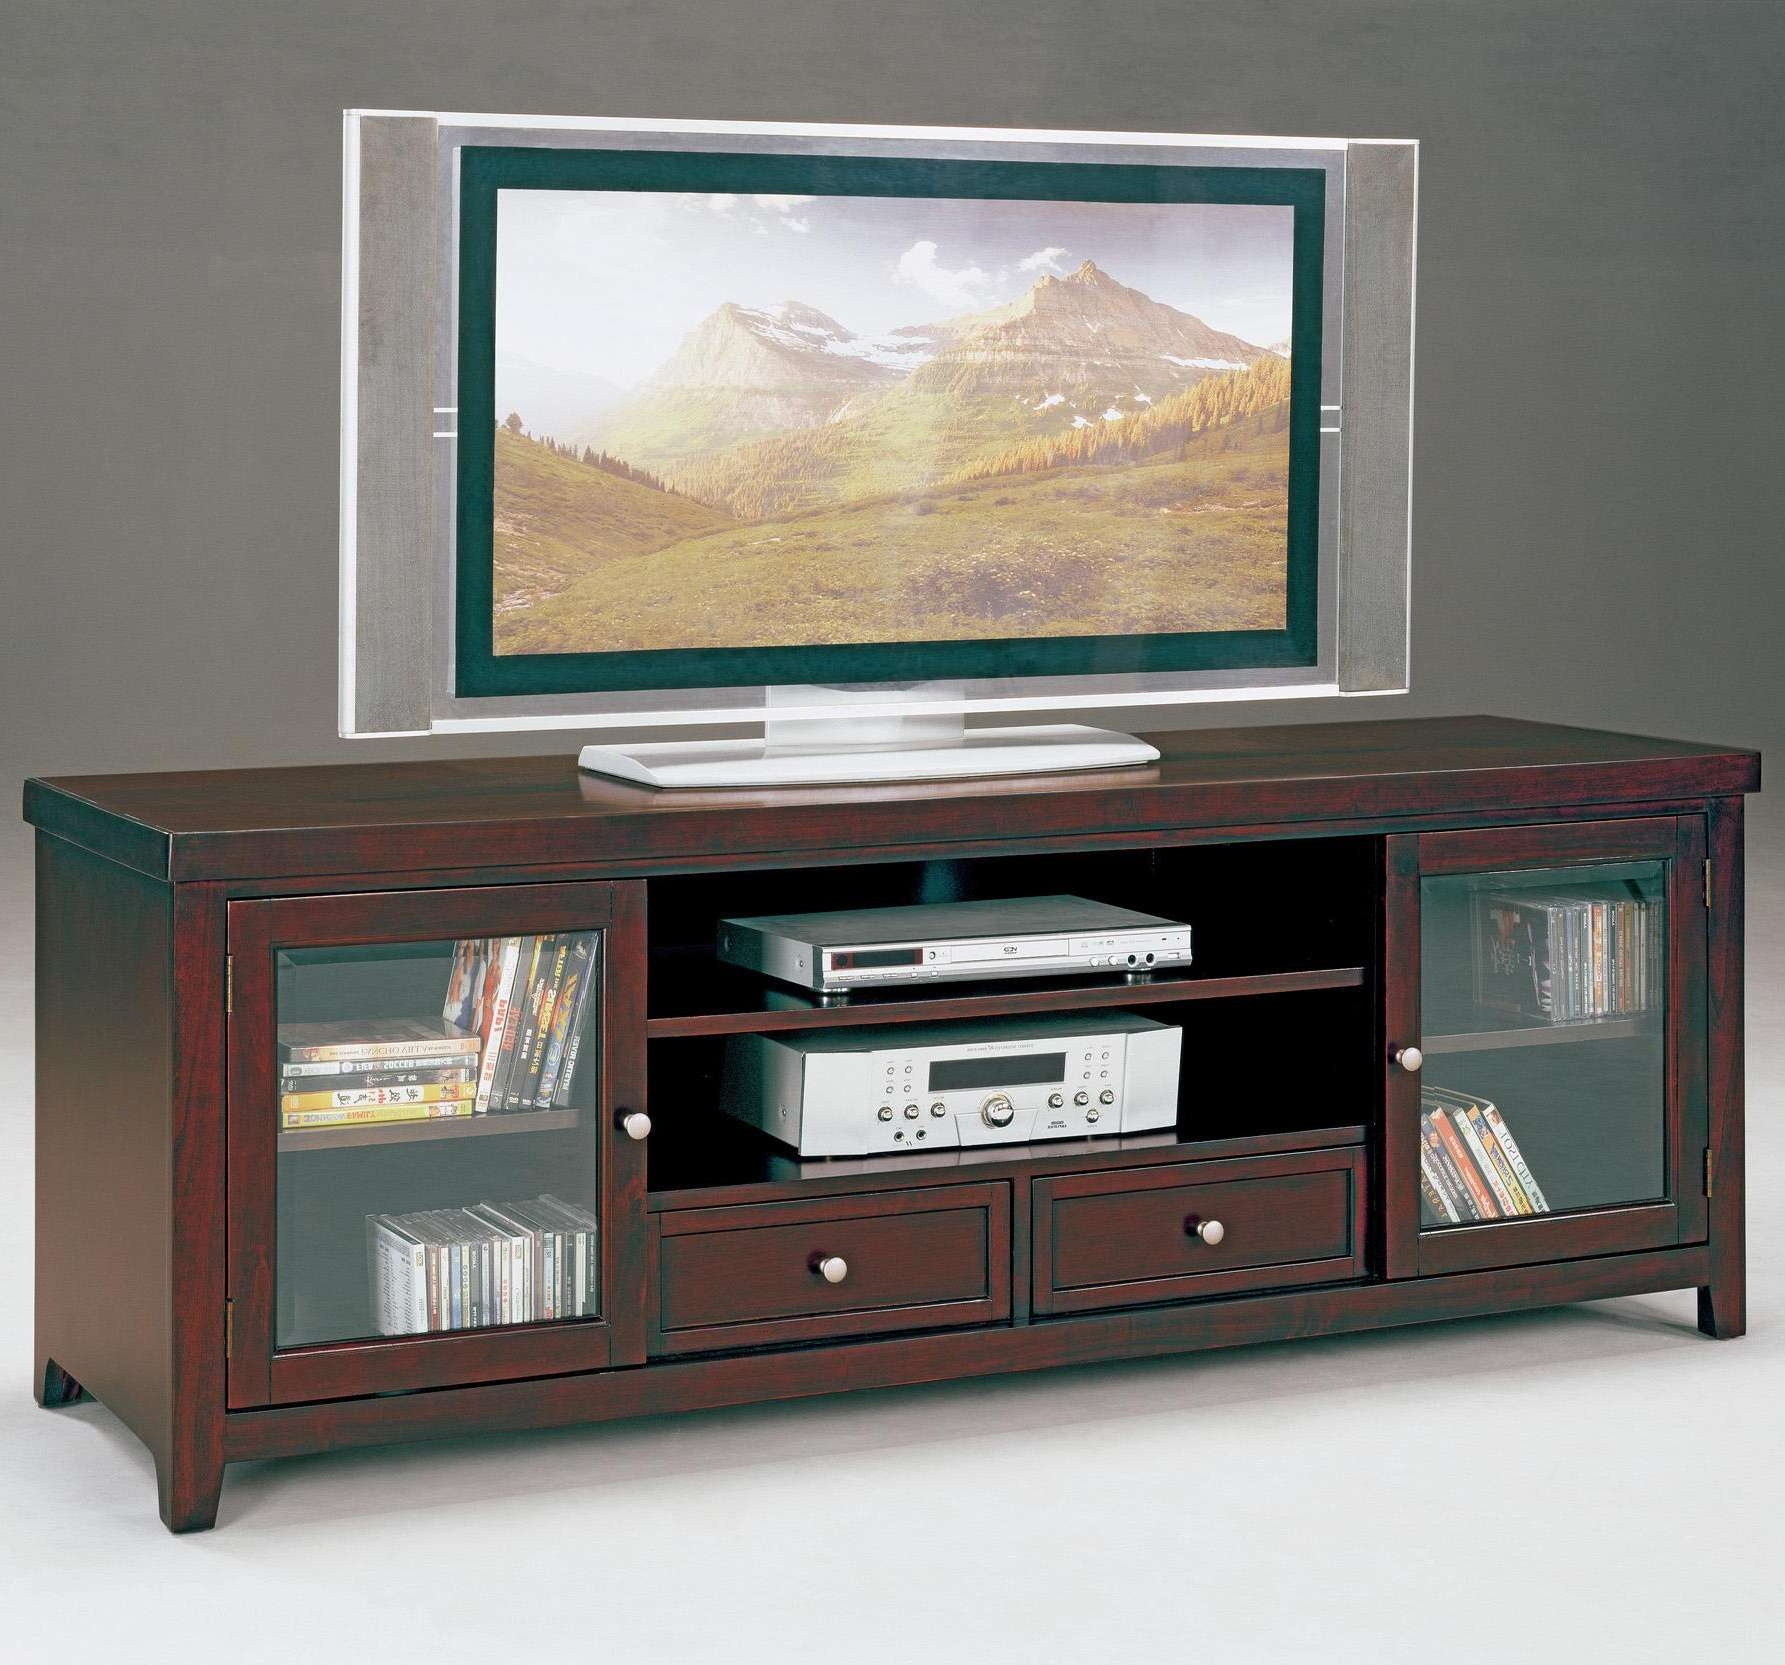 Ava Furniture Houston – Cheap Discount Tv Stands Furniture In Throughout Sleek Tv Stands (View 13 of 15)